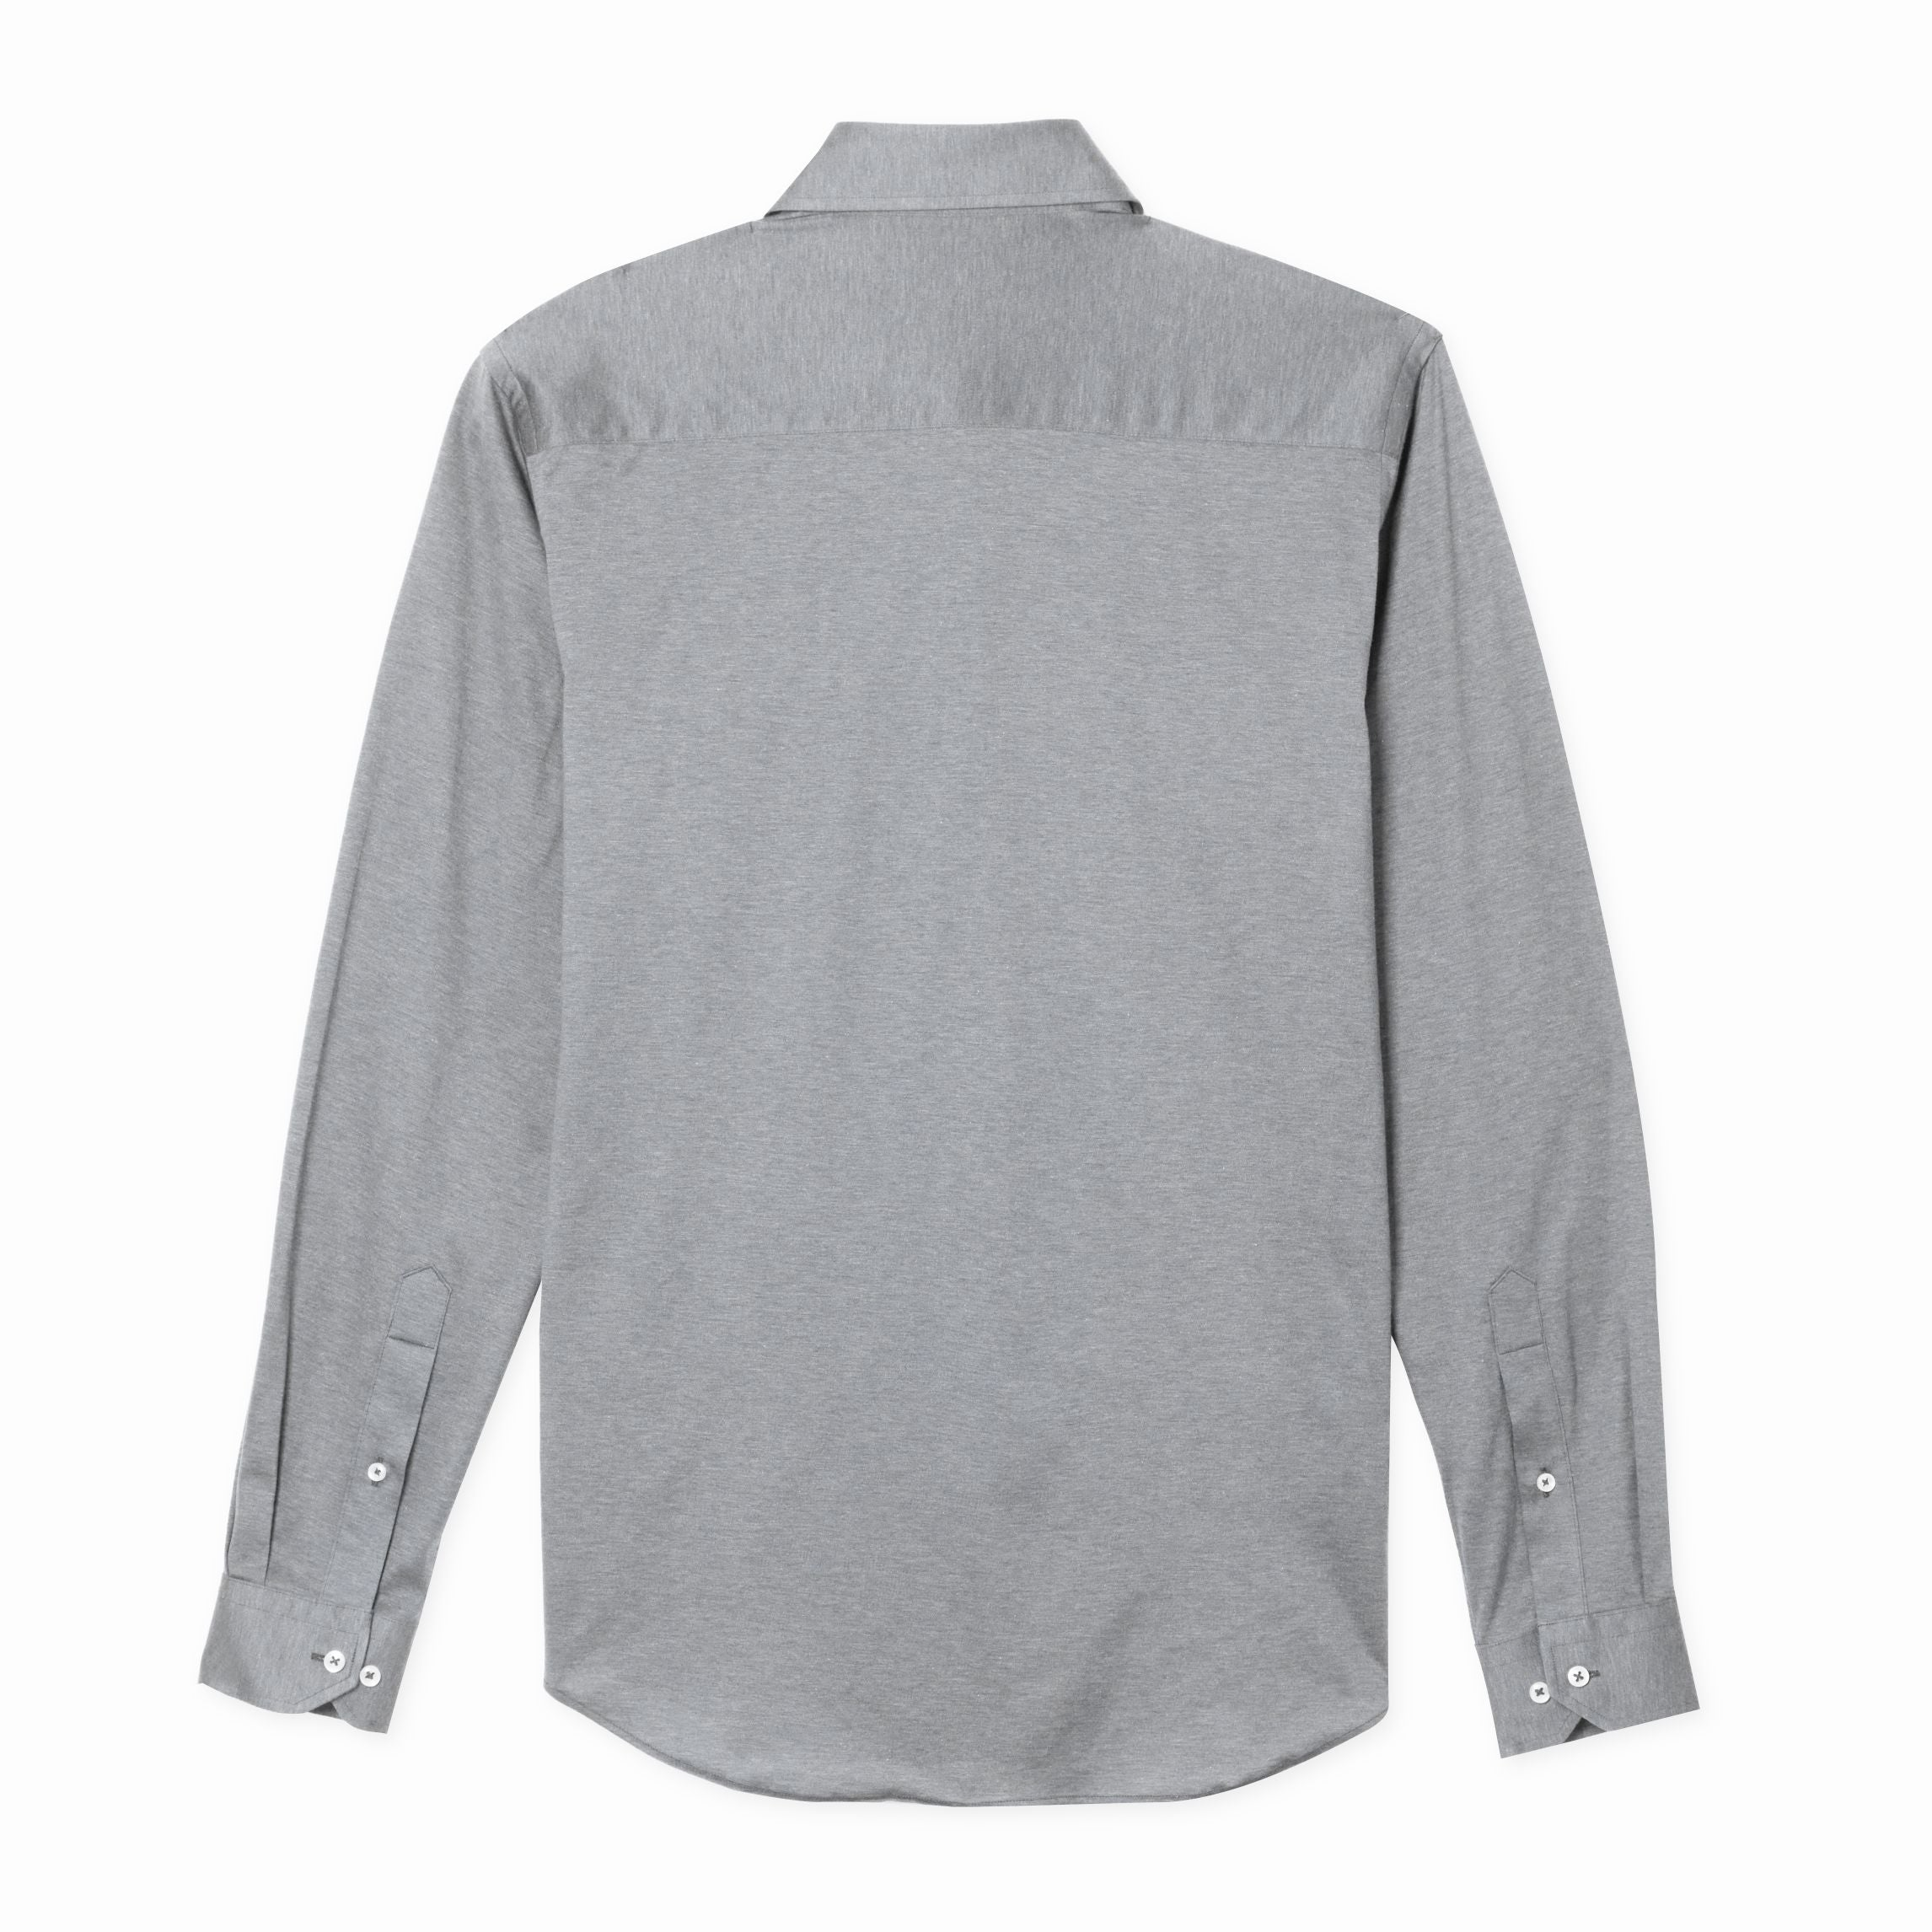 The Zoom Shirt in Heathered Grey